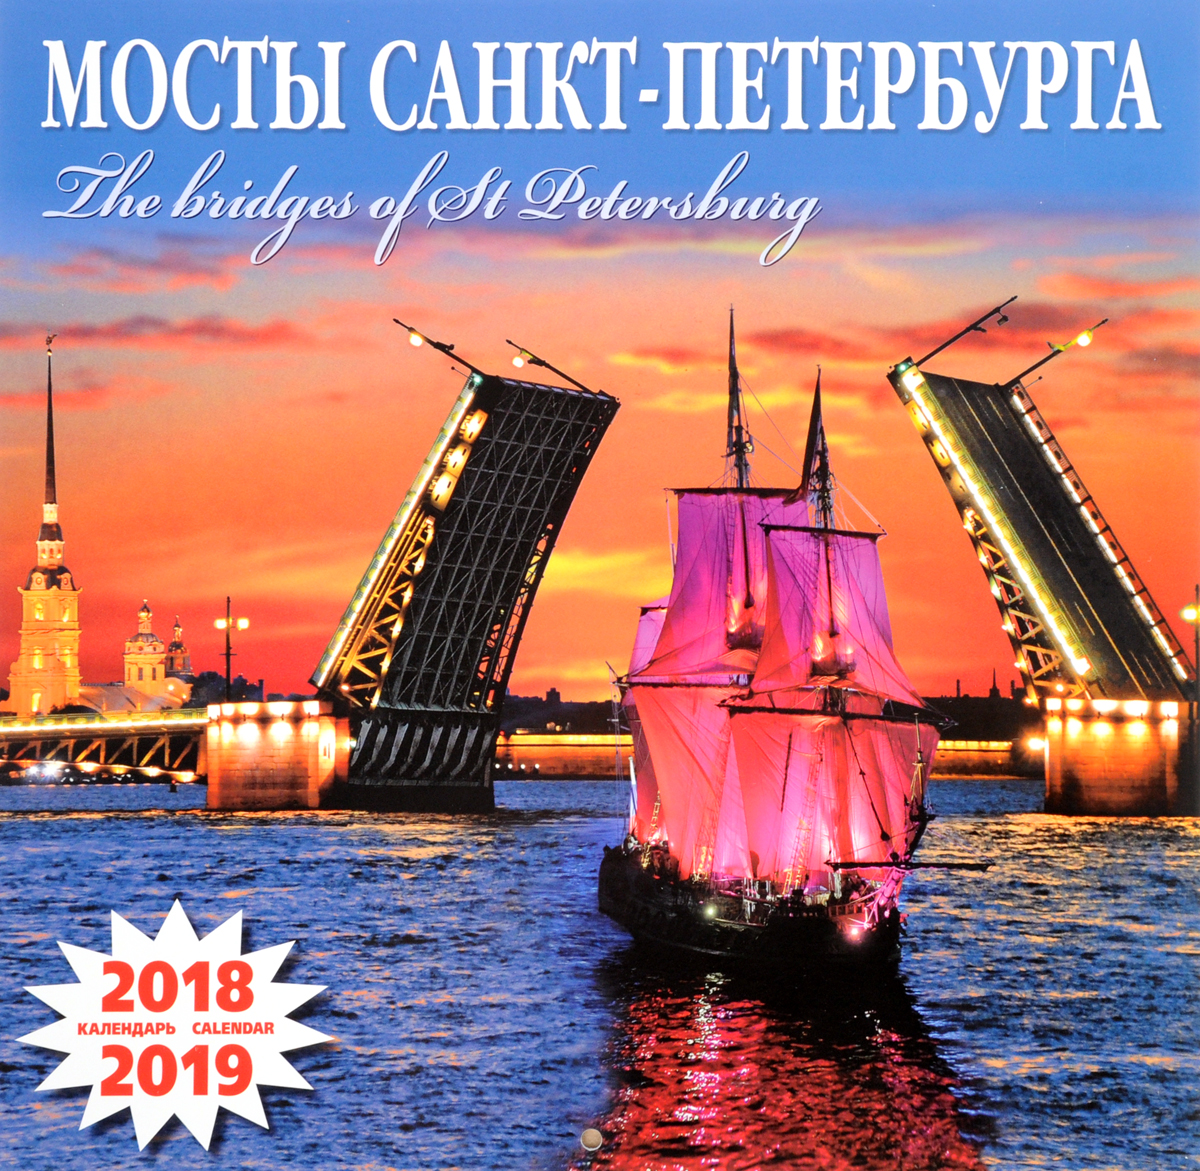 Календарь 2018-2019 (на скрепке). Мосты Санкт-Петербурга / The Bridges of St. Petersburg free shipping cy041 loft vintage style metal painting home pendant lights lamp page 6